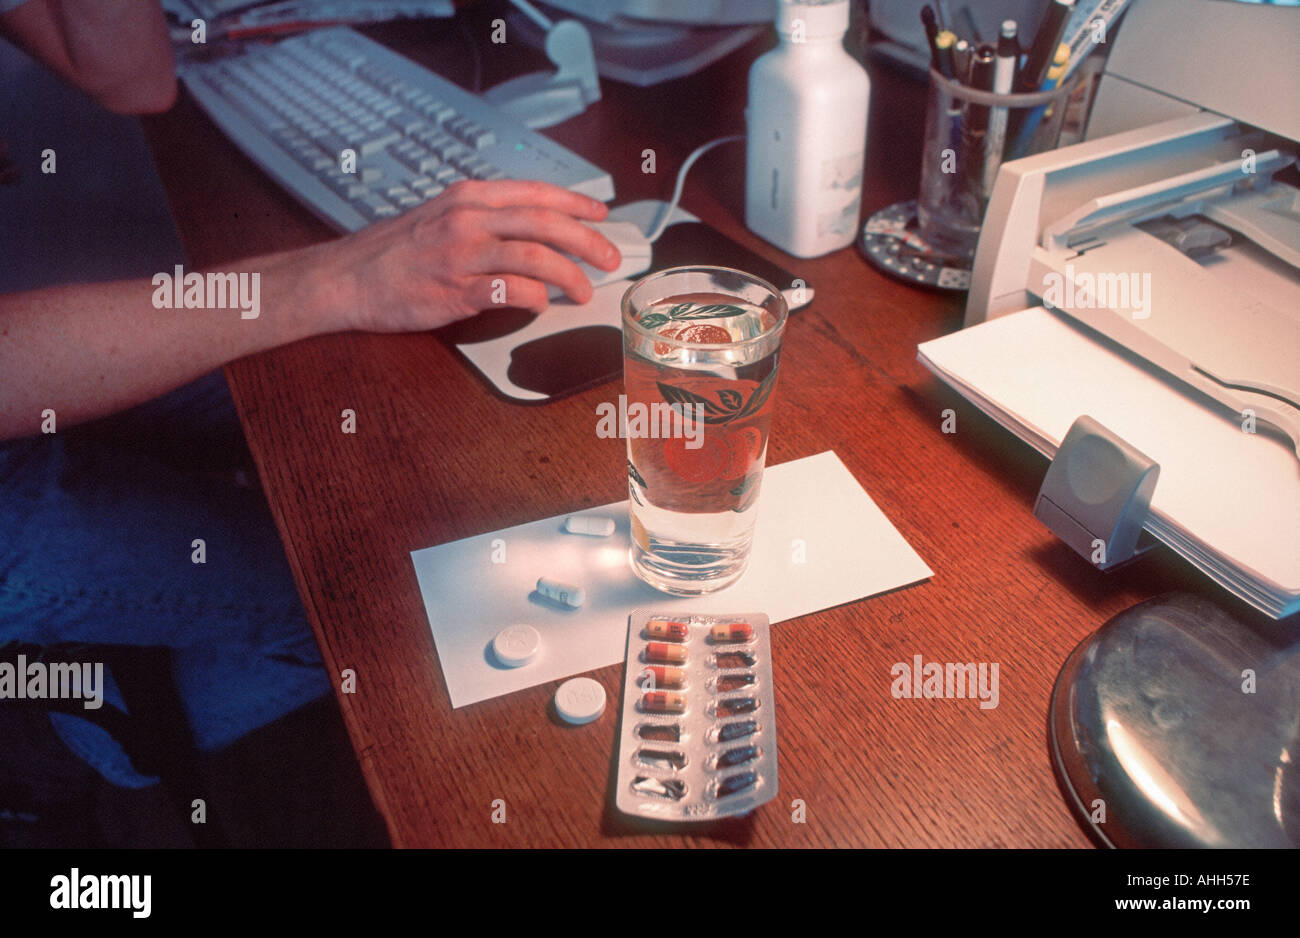 Medical HAART AIDS anti Viral Medication Male Patient at Home Office Working on Computer, Detail Close up, Medicines Tablets - Stock Image